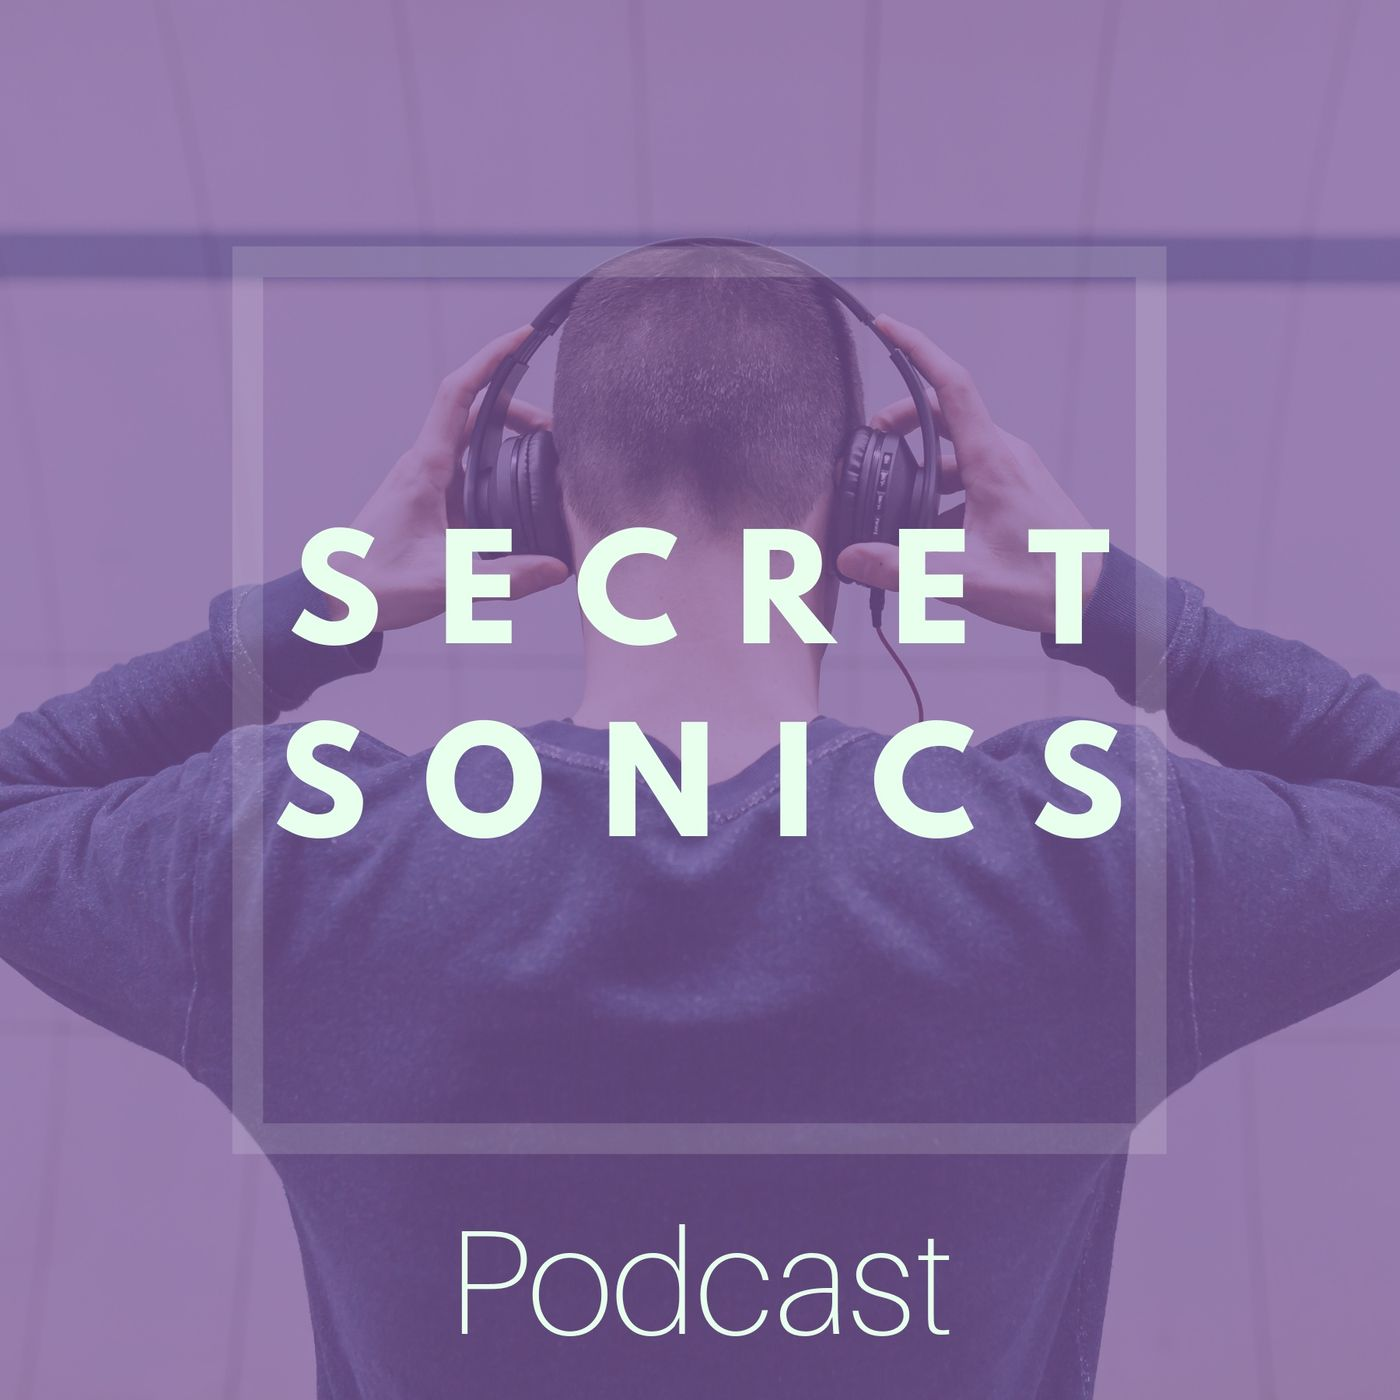 Secret Sonics 014 - Solocast #1 - My Signal Path, Templates, Working in Unideal Spaces